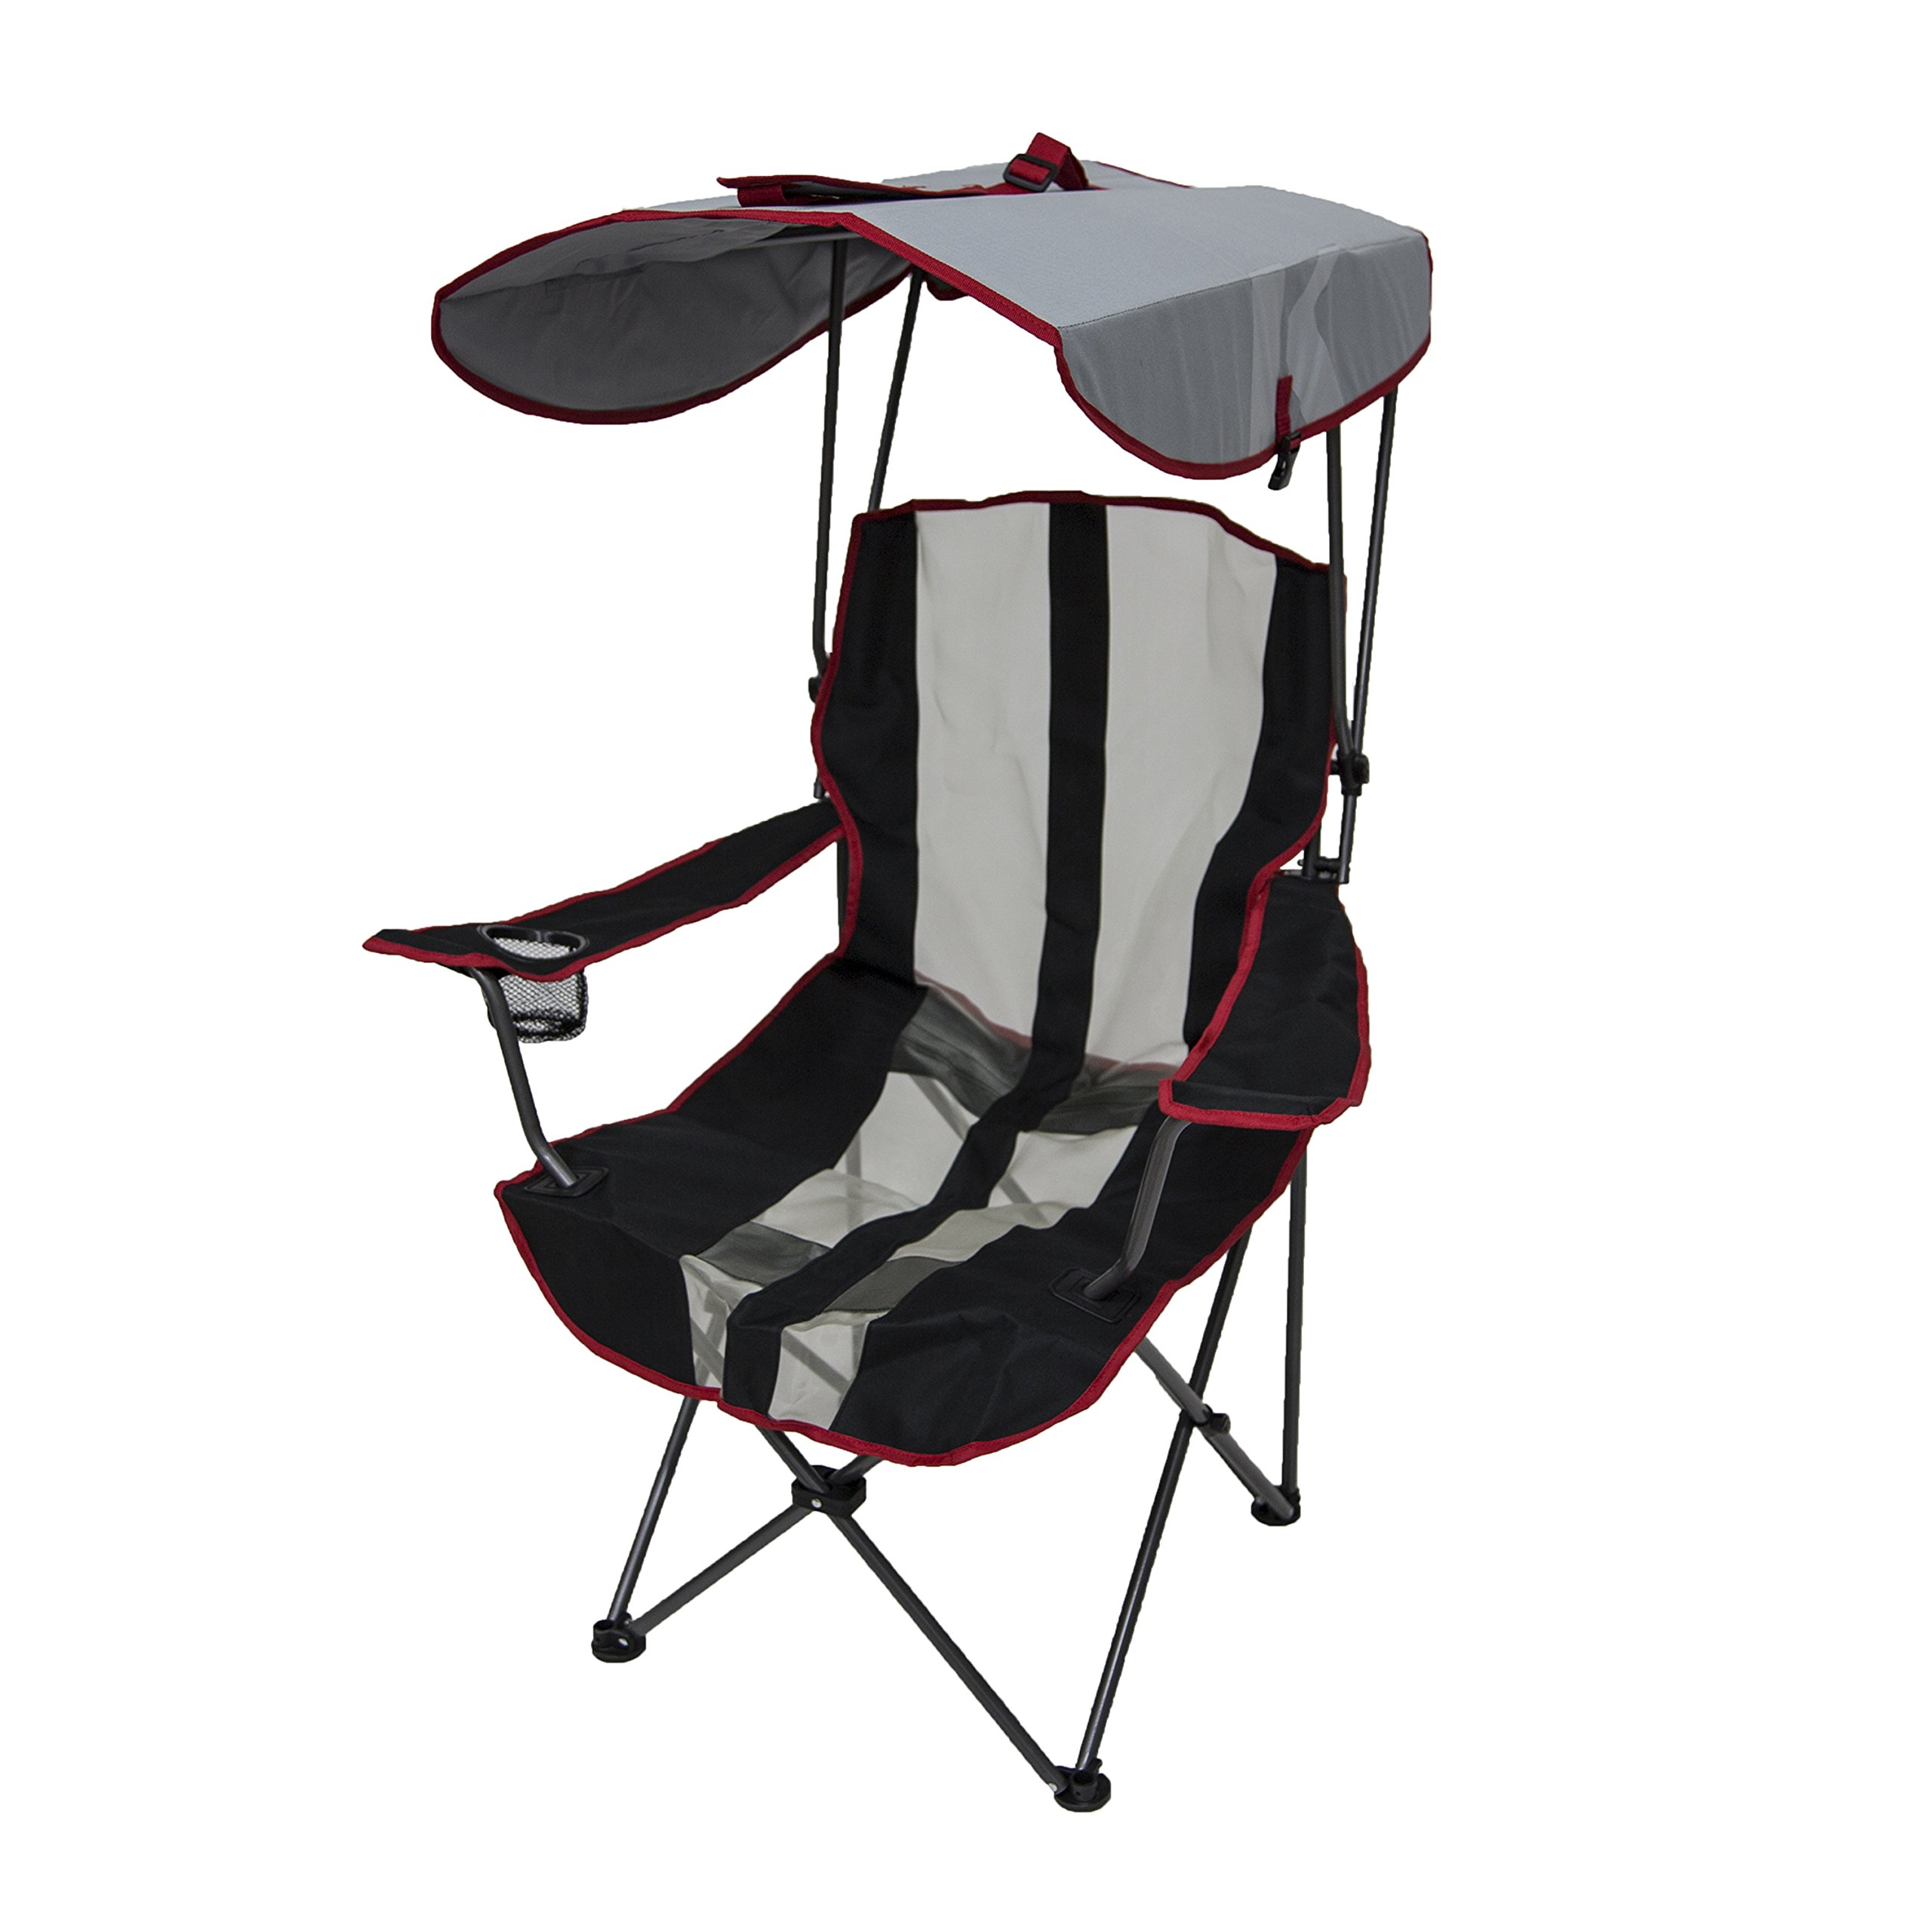 Kelsyus Original Canopy Chair - Foldable Chair for Camping, Tailgates, and Outdoor Events - Red Stripe by Kelsyus